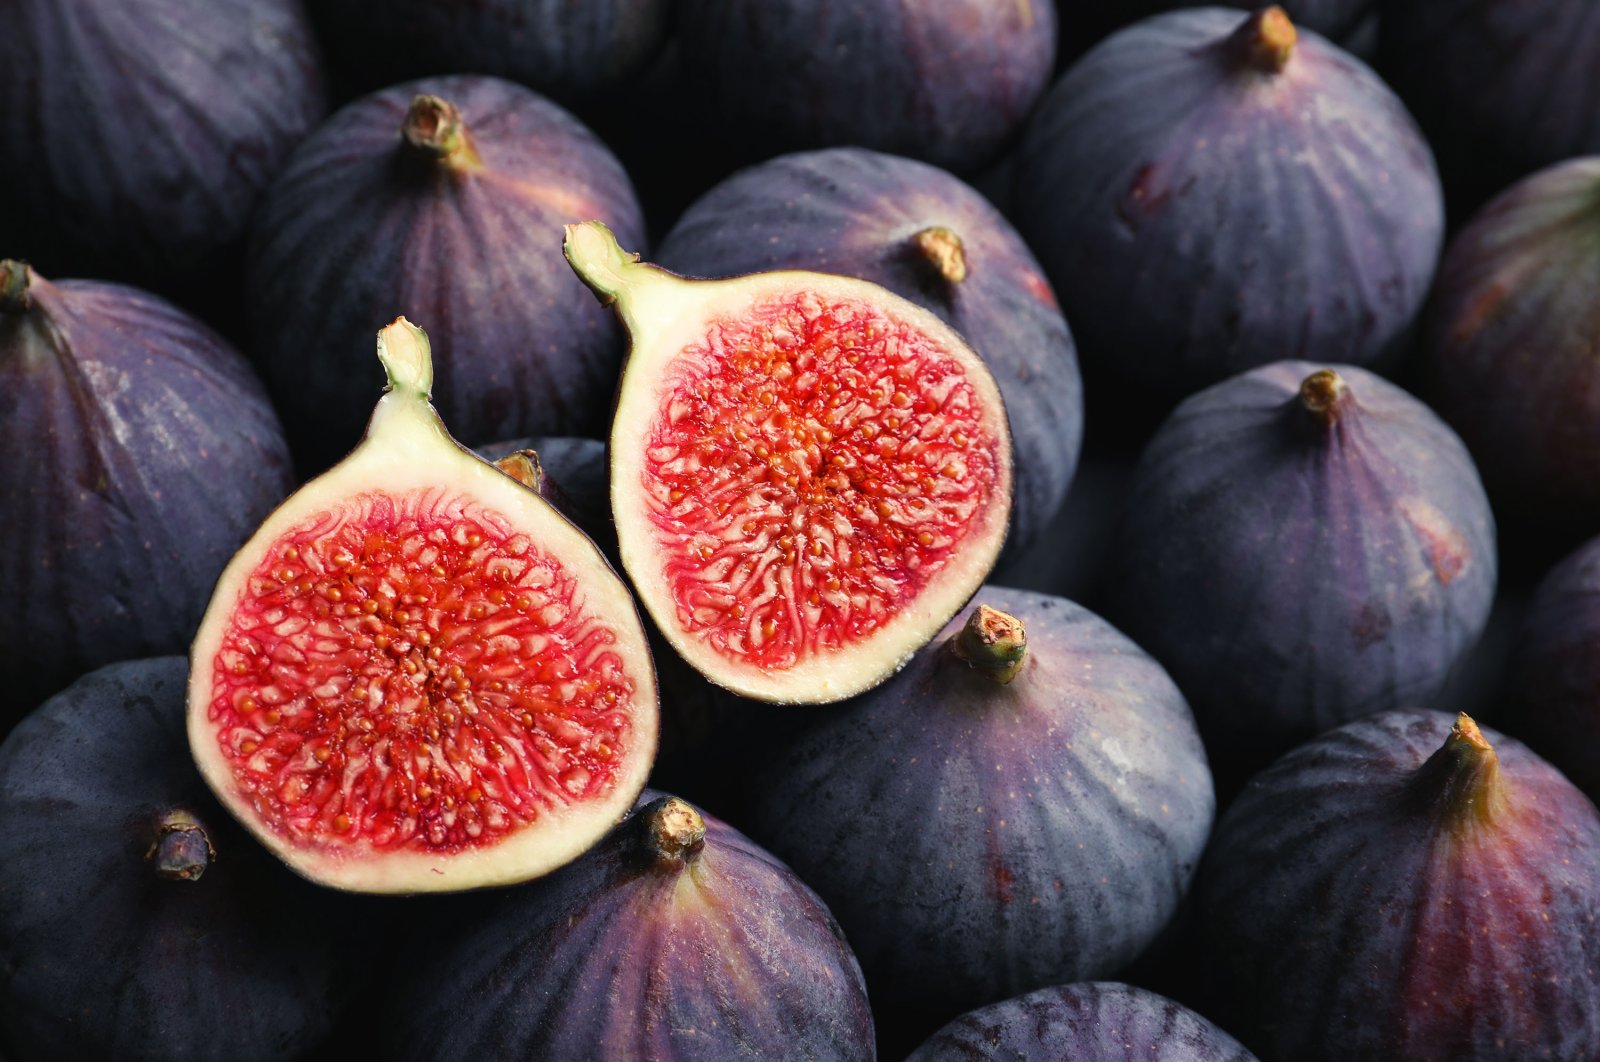 The juicy interior of a fig that has been sliced in half. (Shutterstock Photo)